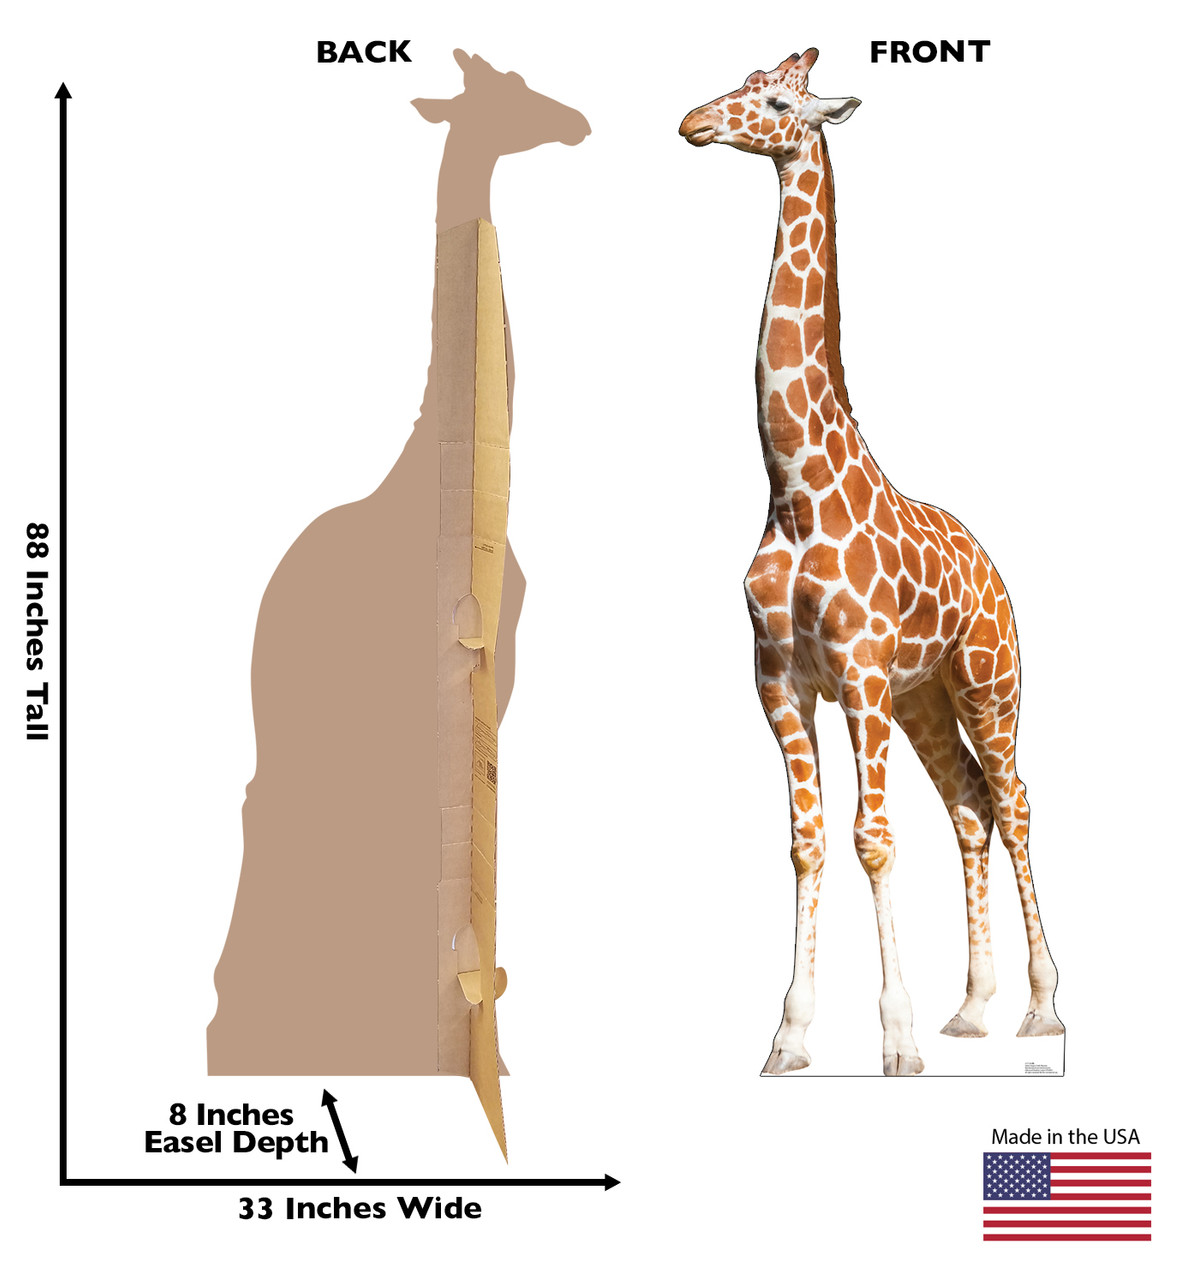 Life-size Giraffe Cardboard Standup   Cardboard Cutout with back and front dimensions.